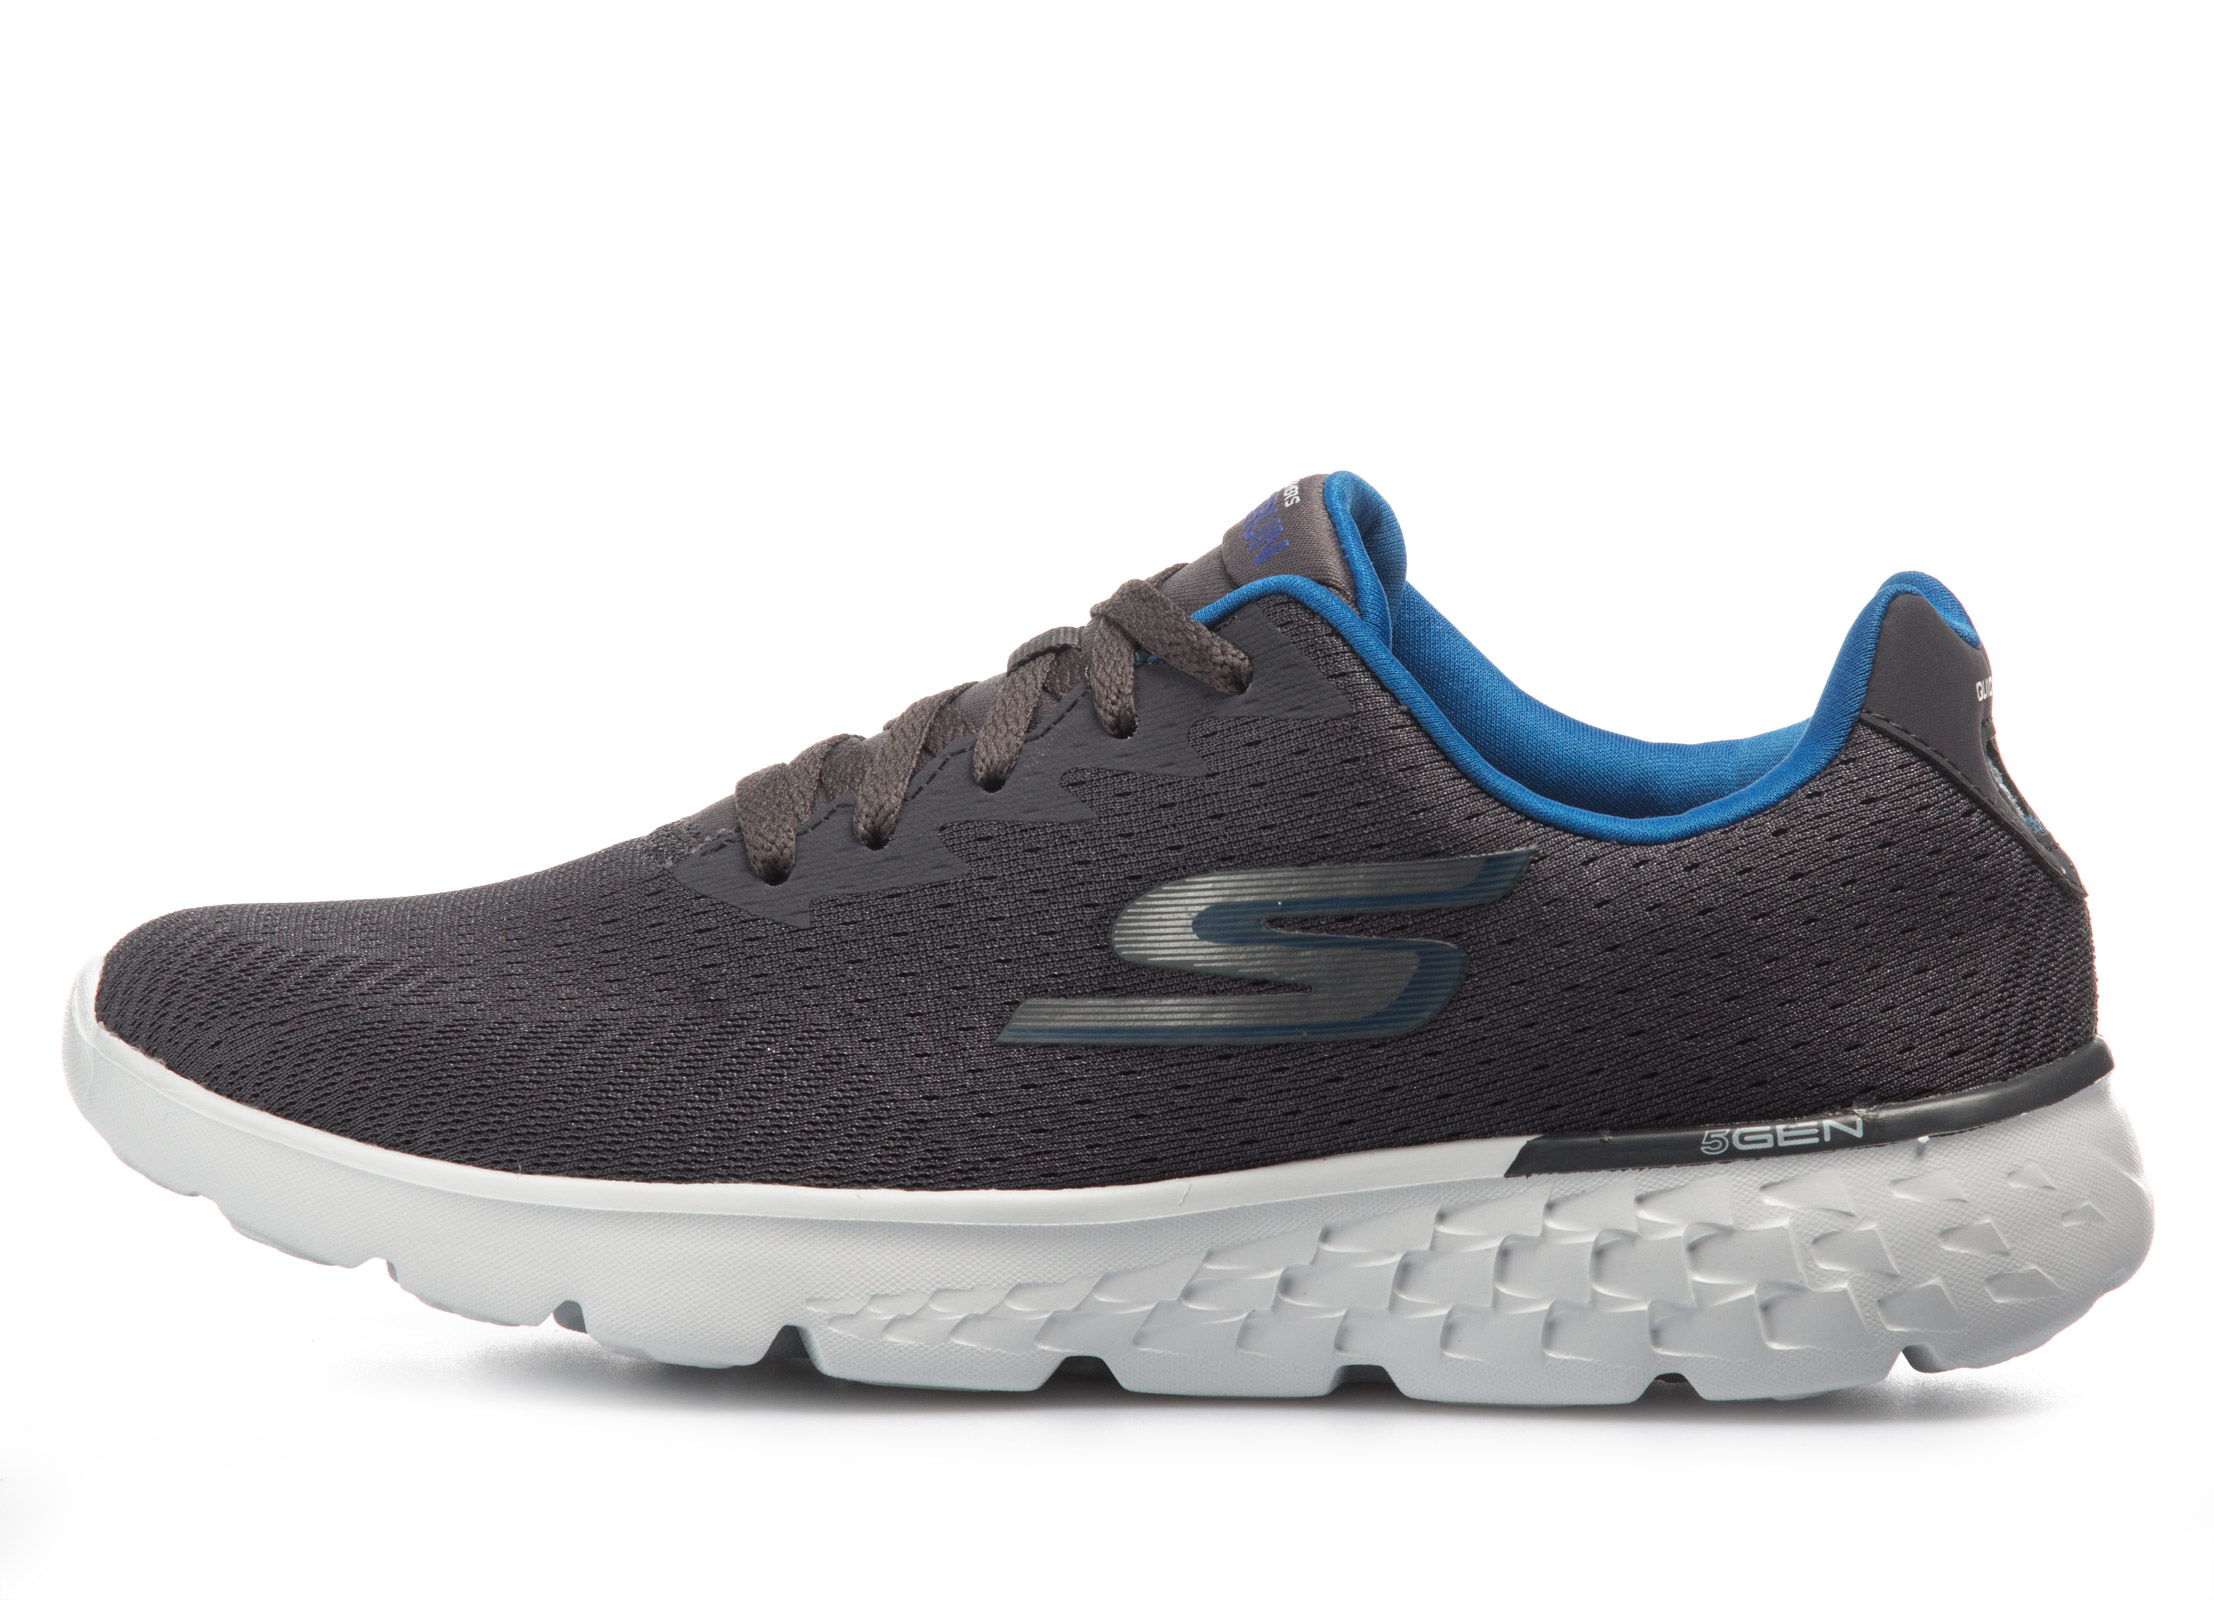 SKECHERS 54354-CCBL Ανθρακί